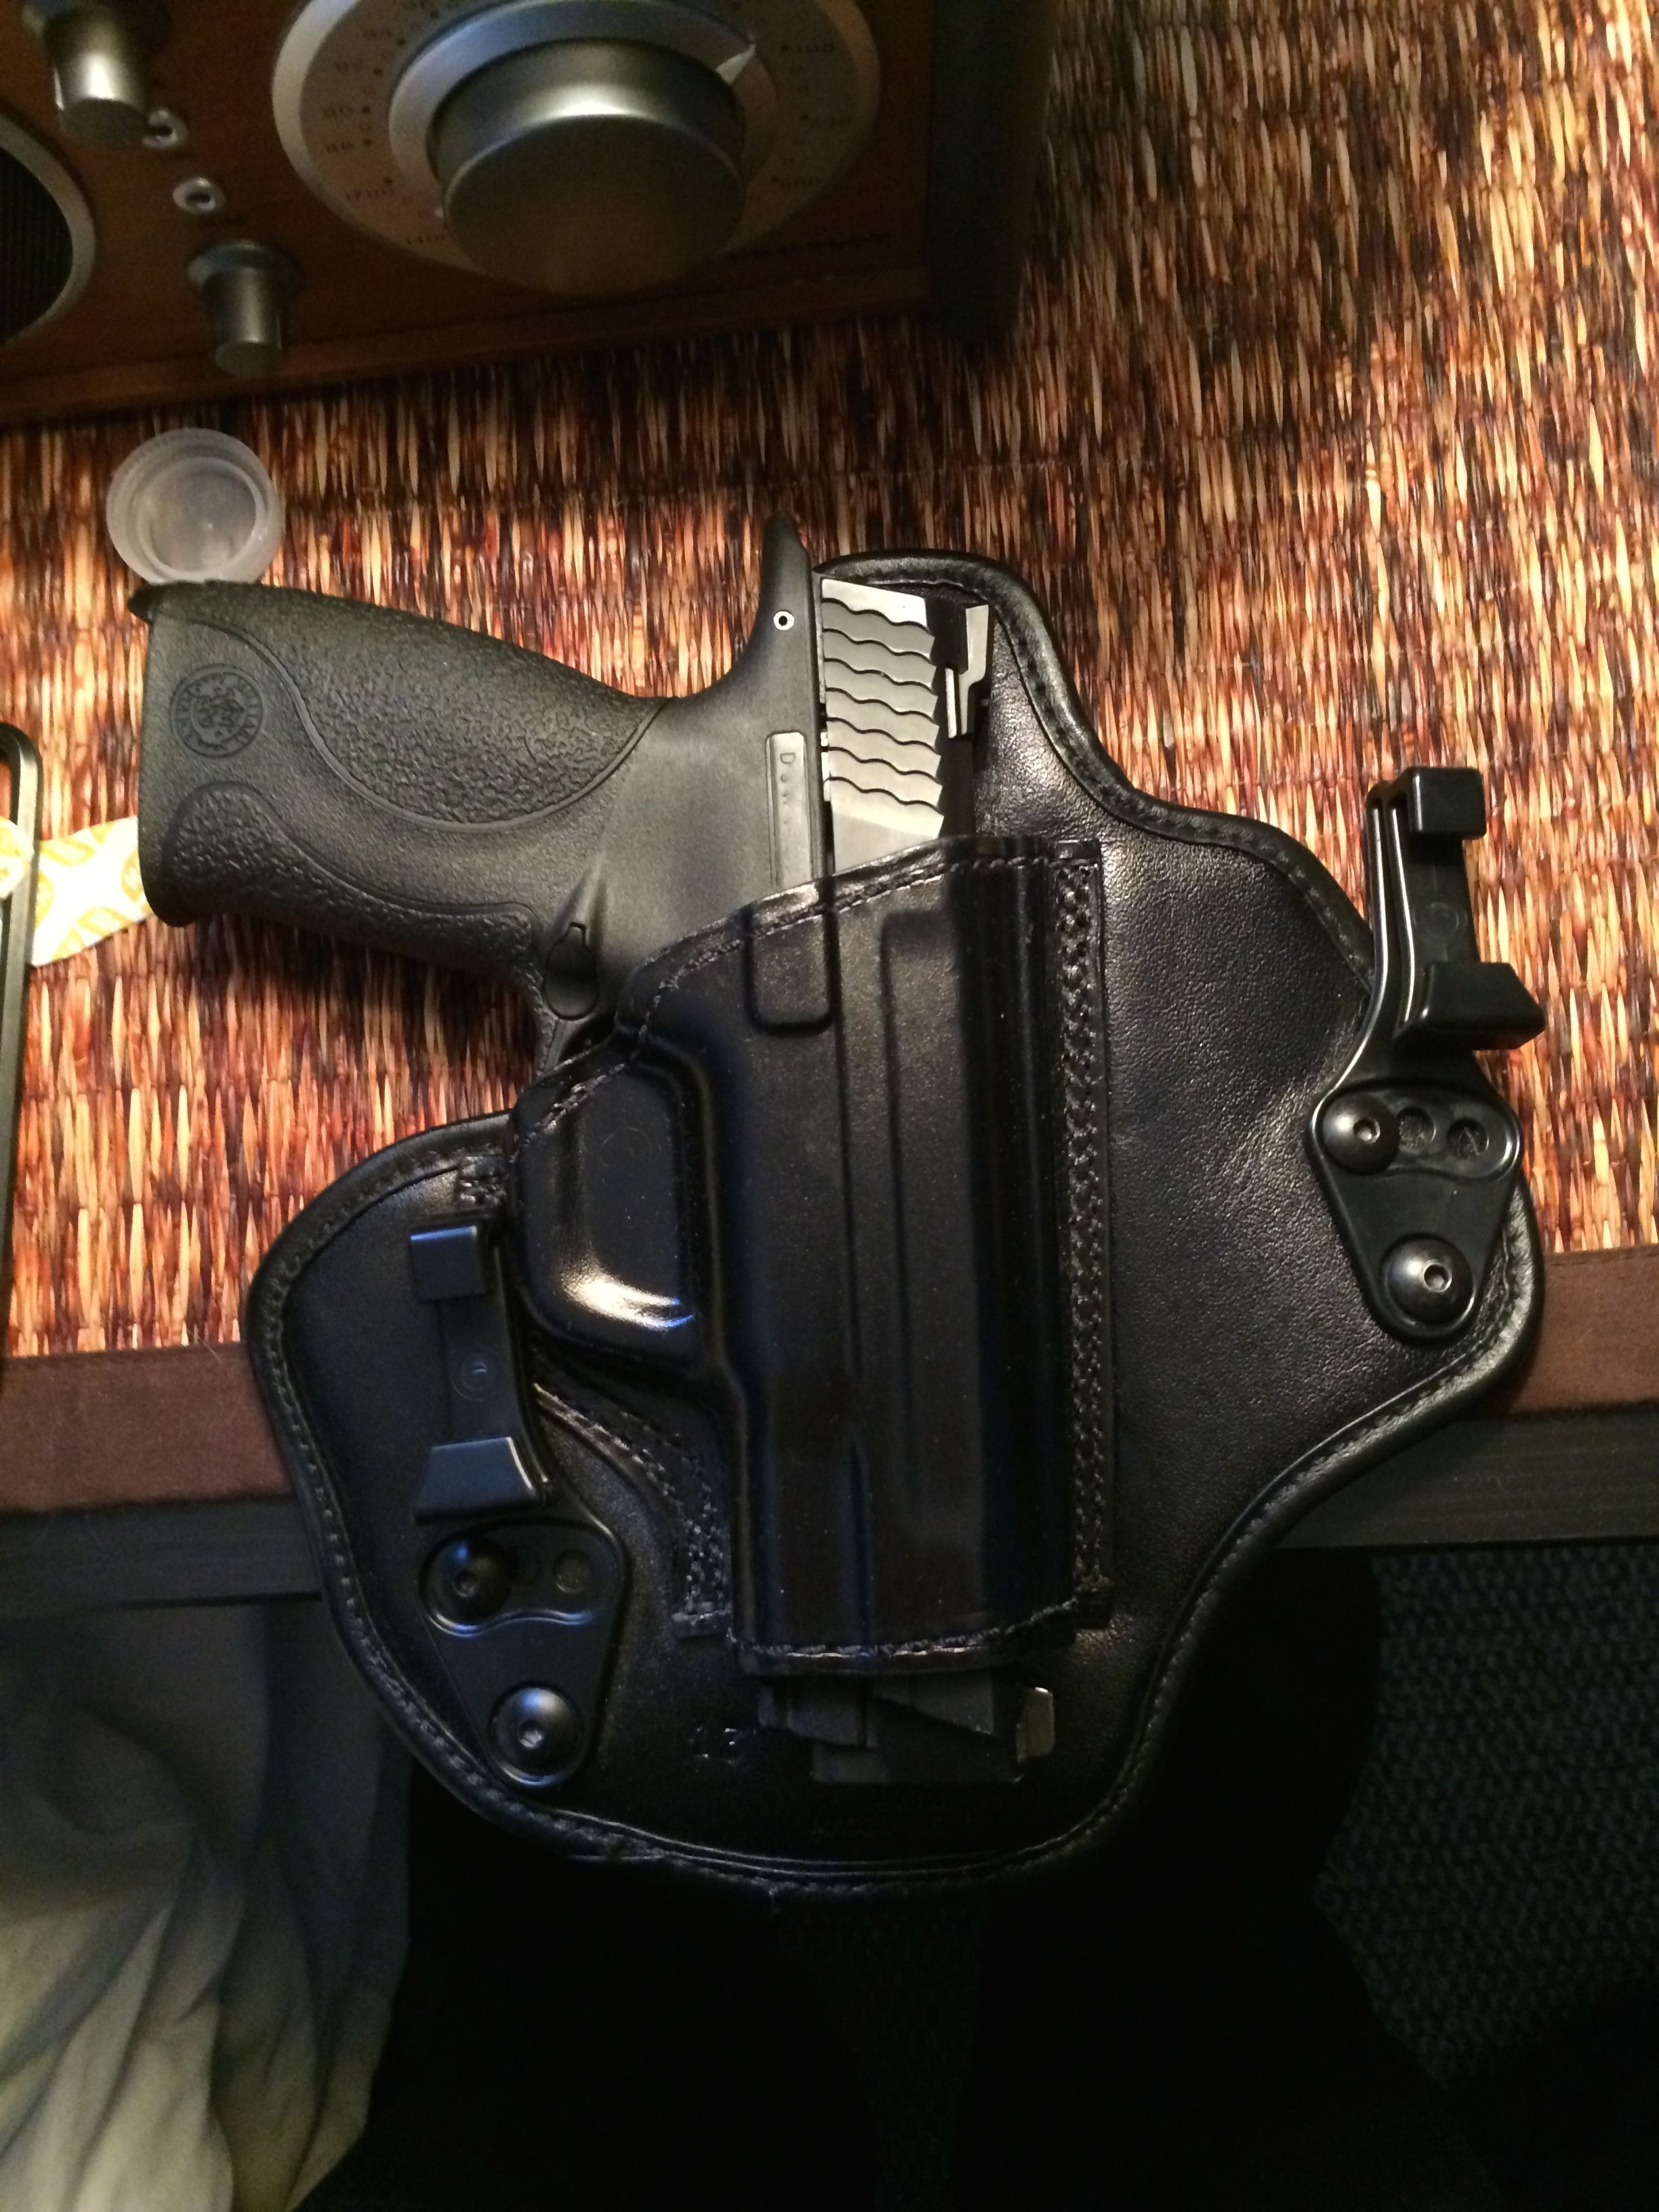 Bianchi iwb holster iwb holster concealed carry holster